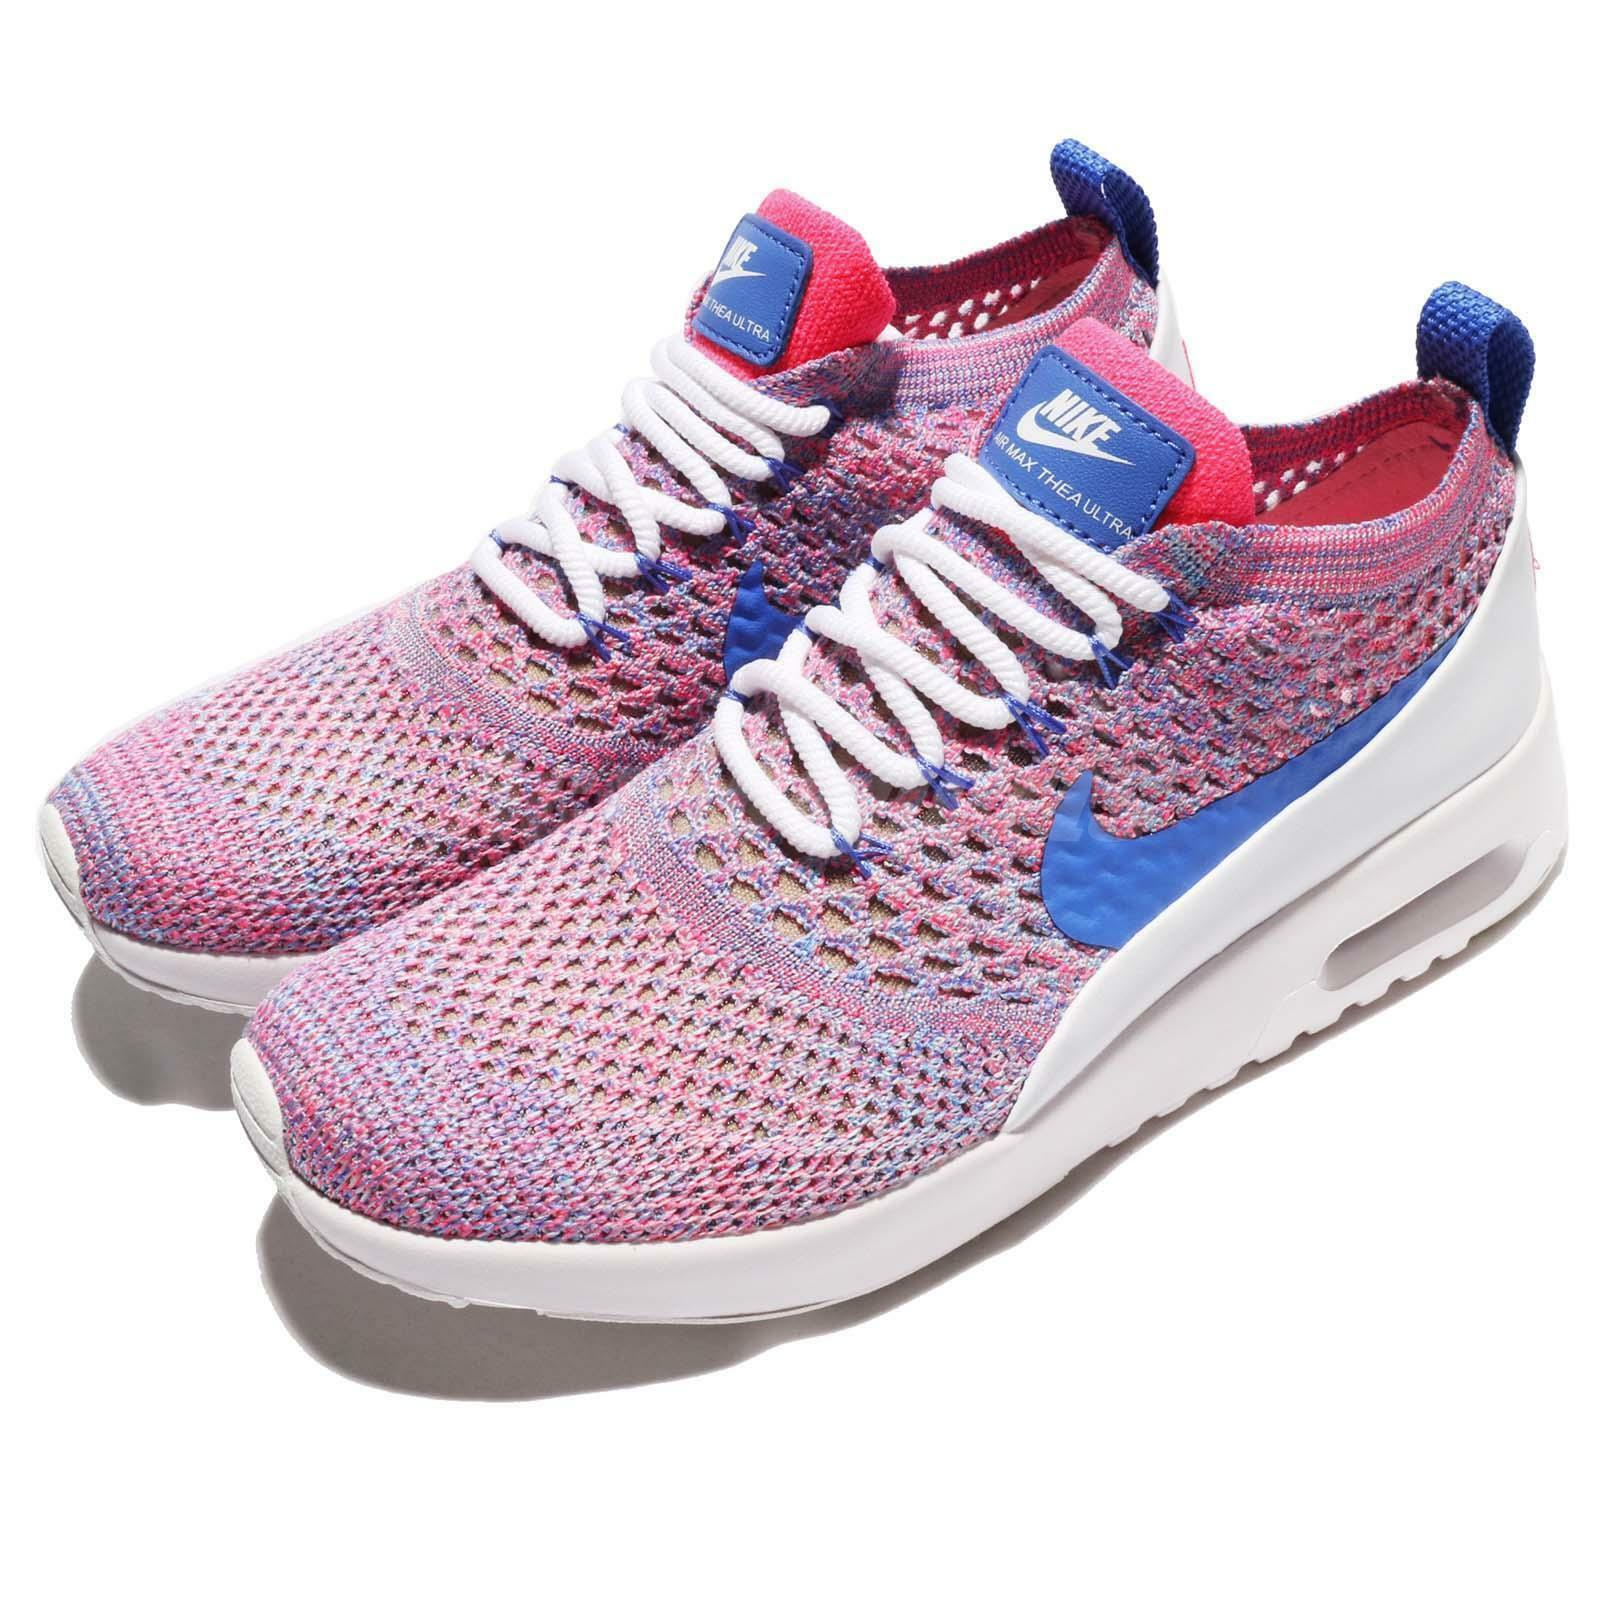 e03c1ccd73f Details about Nike Air Max Thea Ultra FK Flyknit Pink/Blue Women Running  Shoes 881175-100 Sz 1